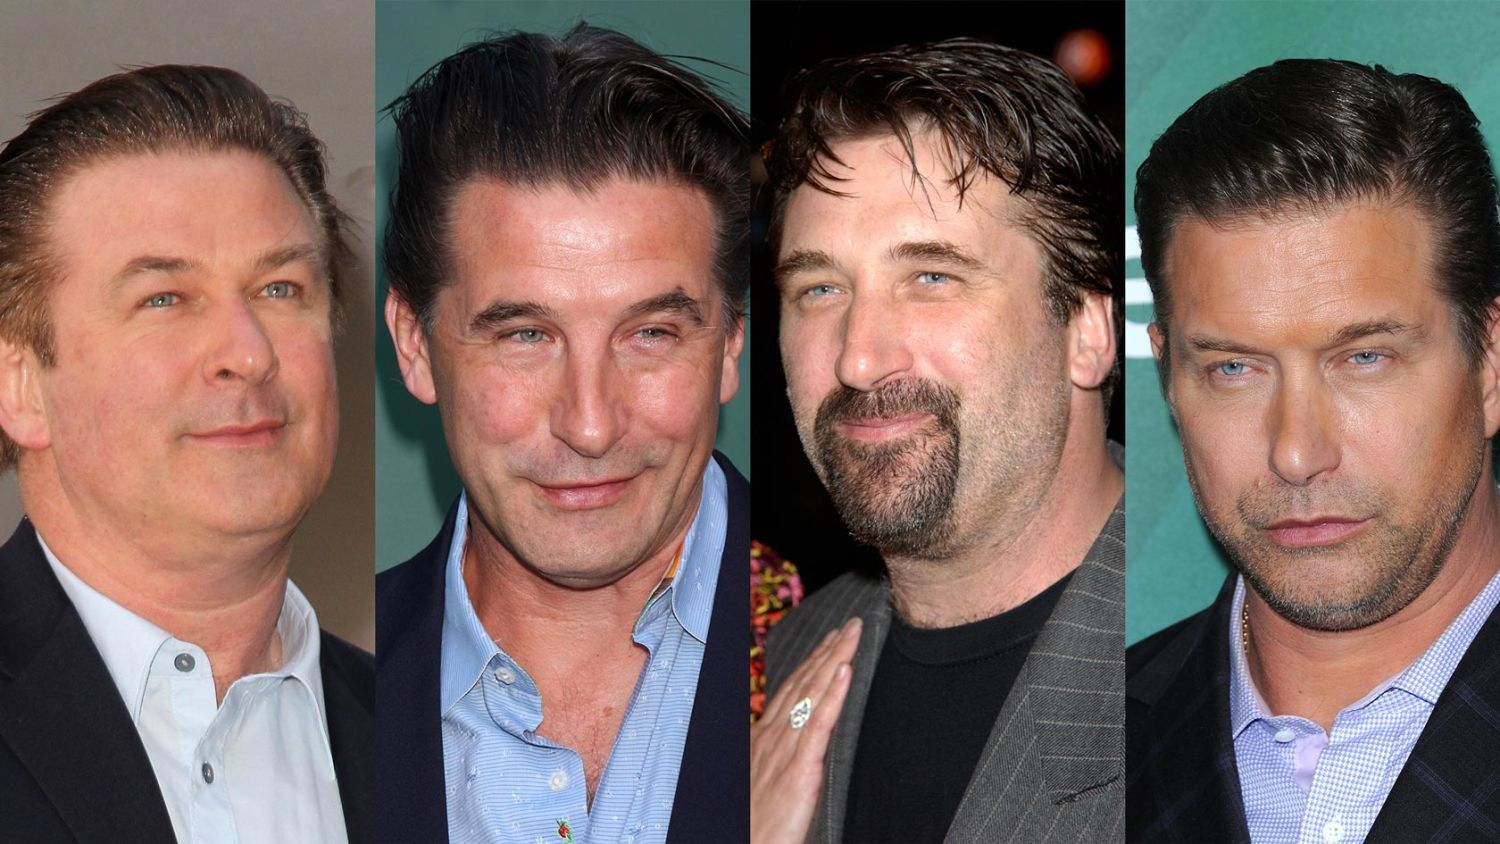 Alec billy stephen and daniel baldwin photos shutterstock the alec billy stephen and daniel baldwin photos shutterstock nvjuhfo Gallery